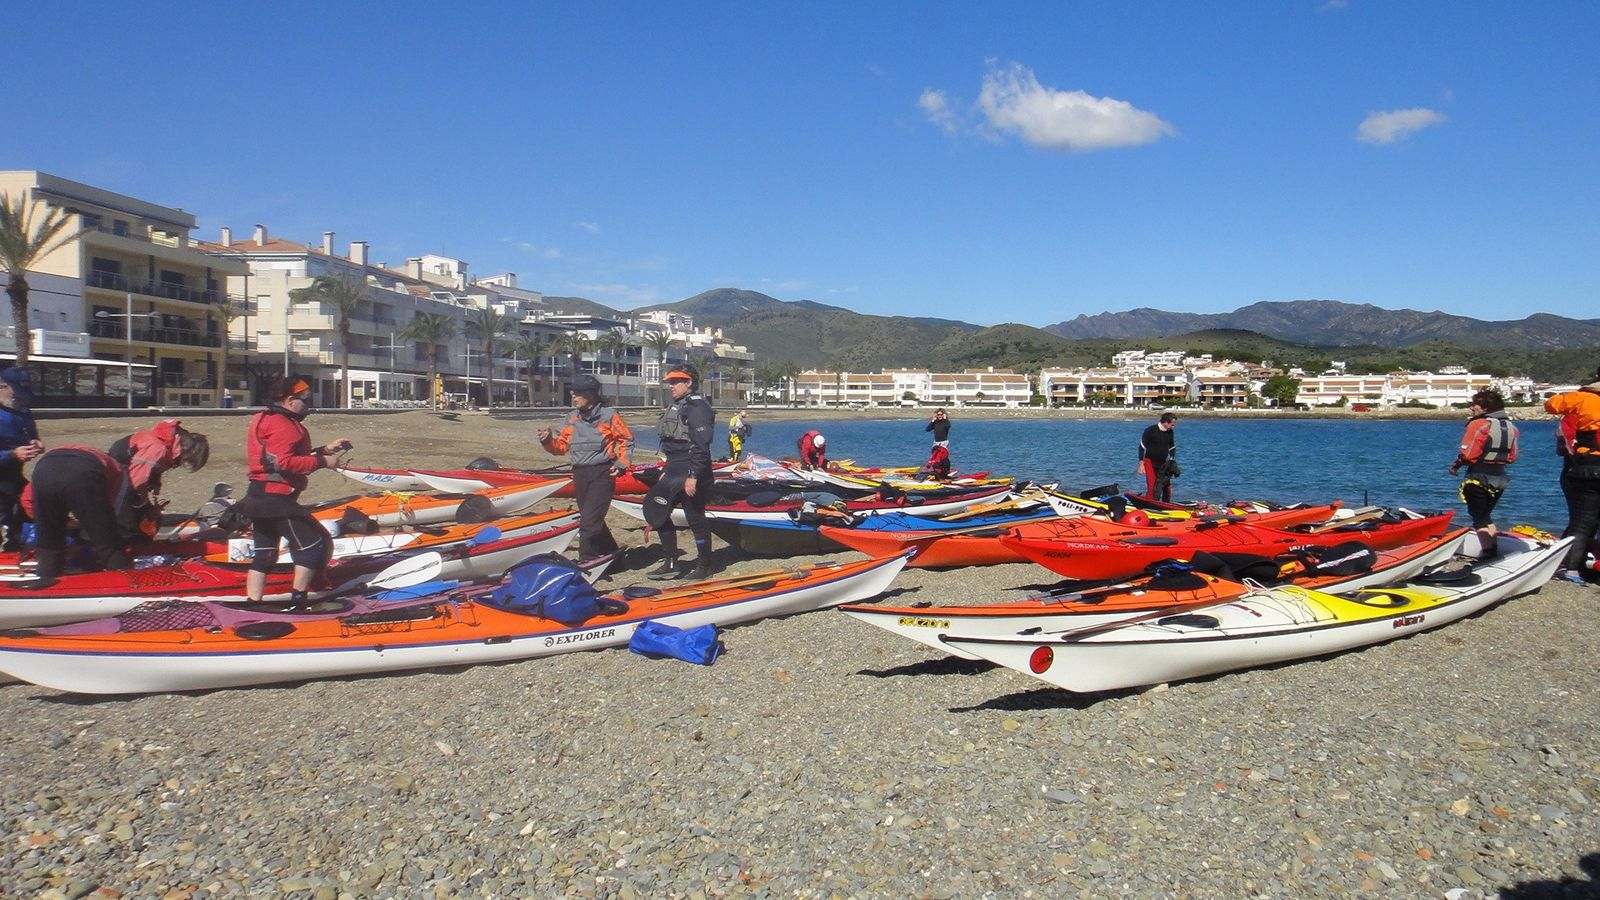 Symposium international de kayak de mer - Llança - Espagne - 23 au 25 mars 2013